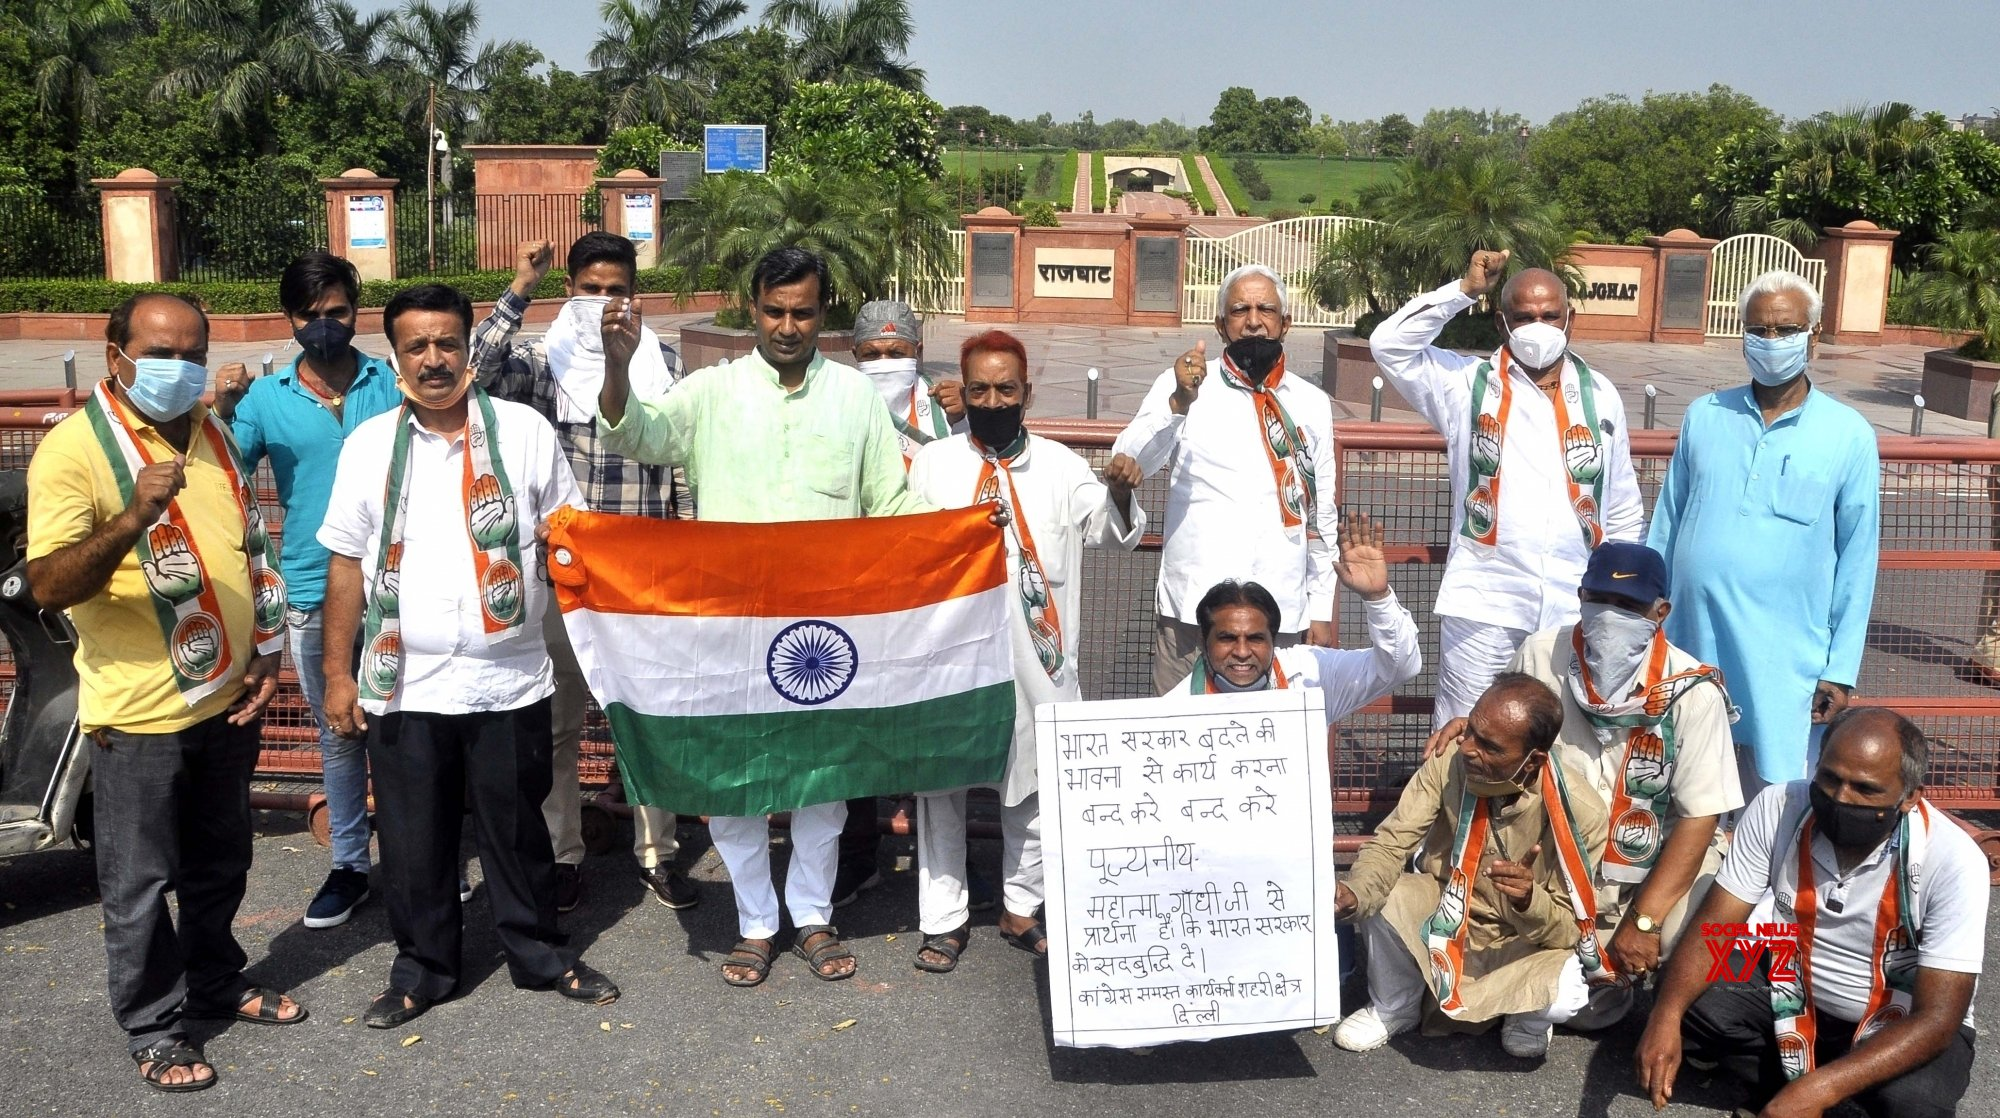 New Delhi: Congress protests against Central Govt after Priyanka asked to vacate govt accommodation #Gallery